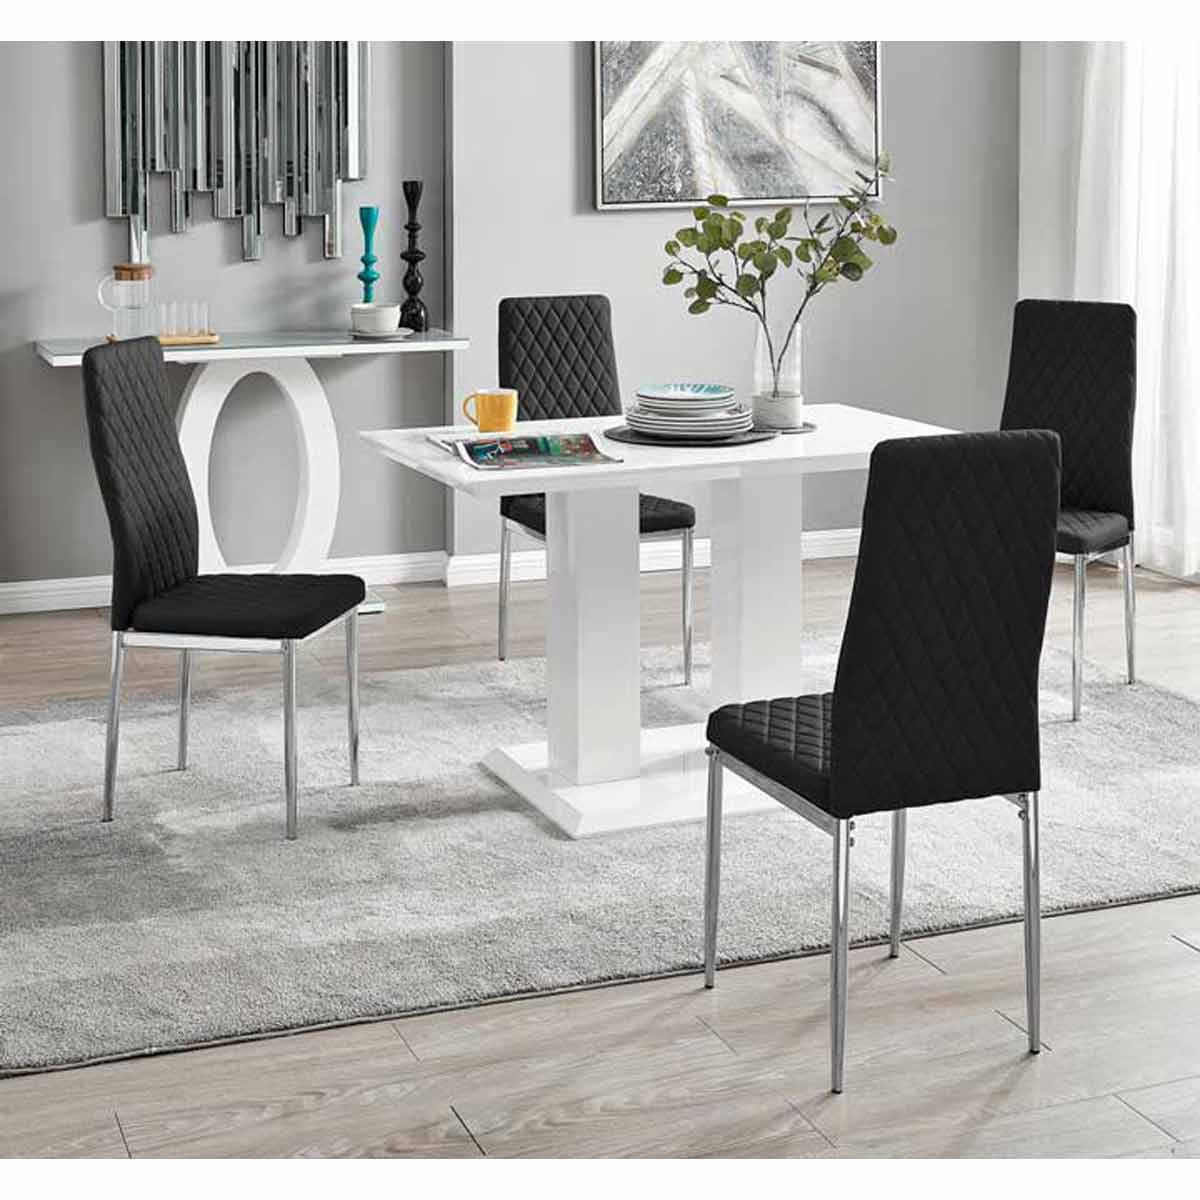 Furniture Box Imperia 4 Modern White High Gloss Dining Table And 4 Black Milan Chairs Set